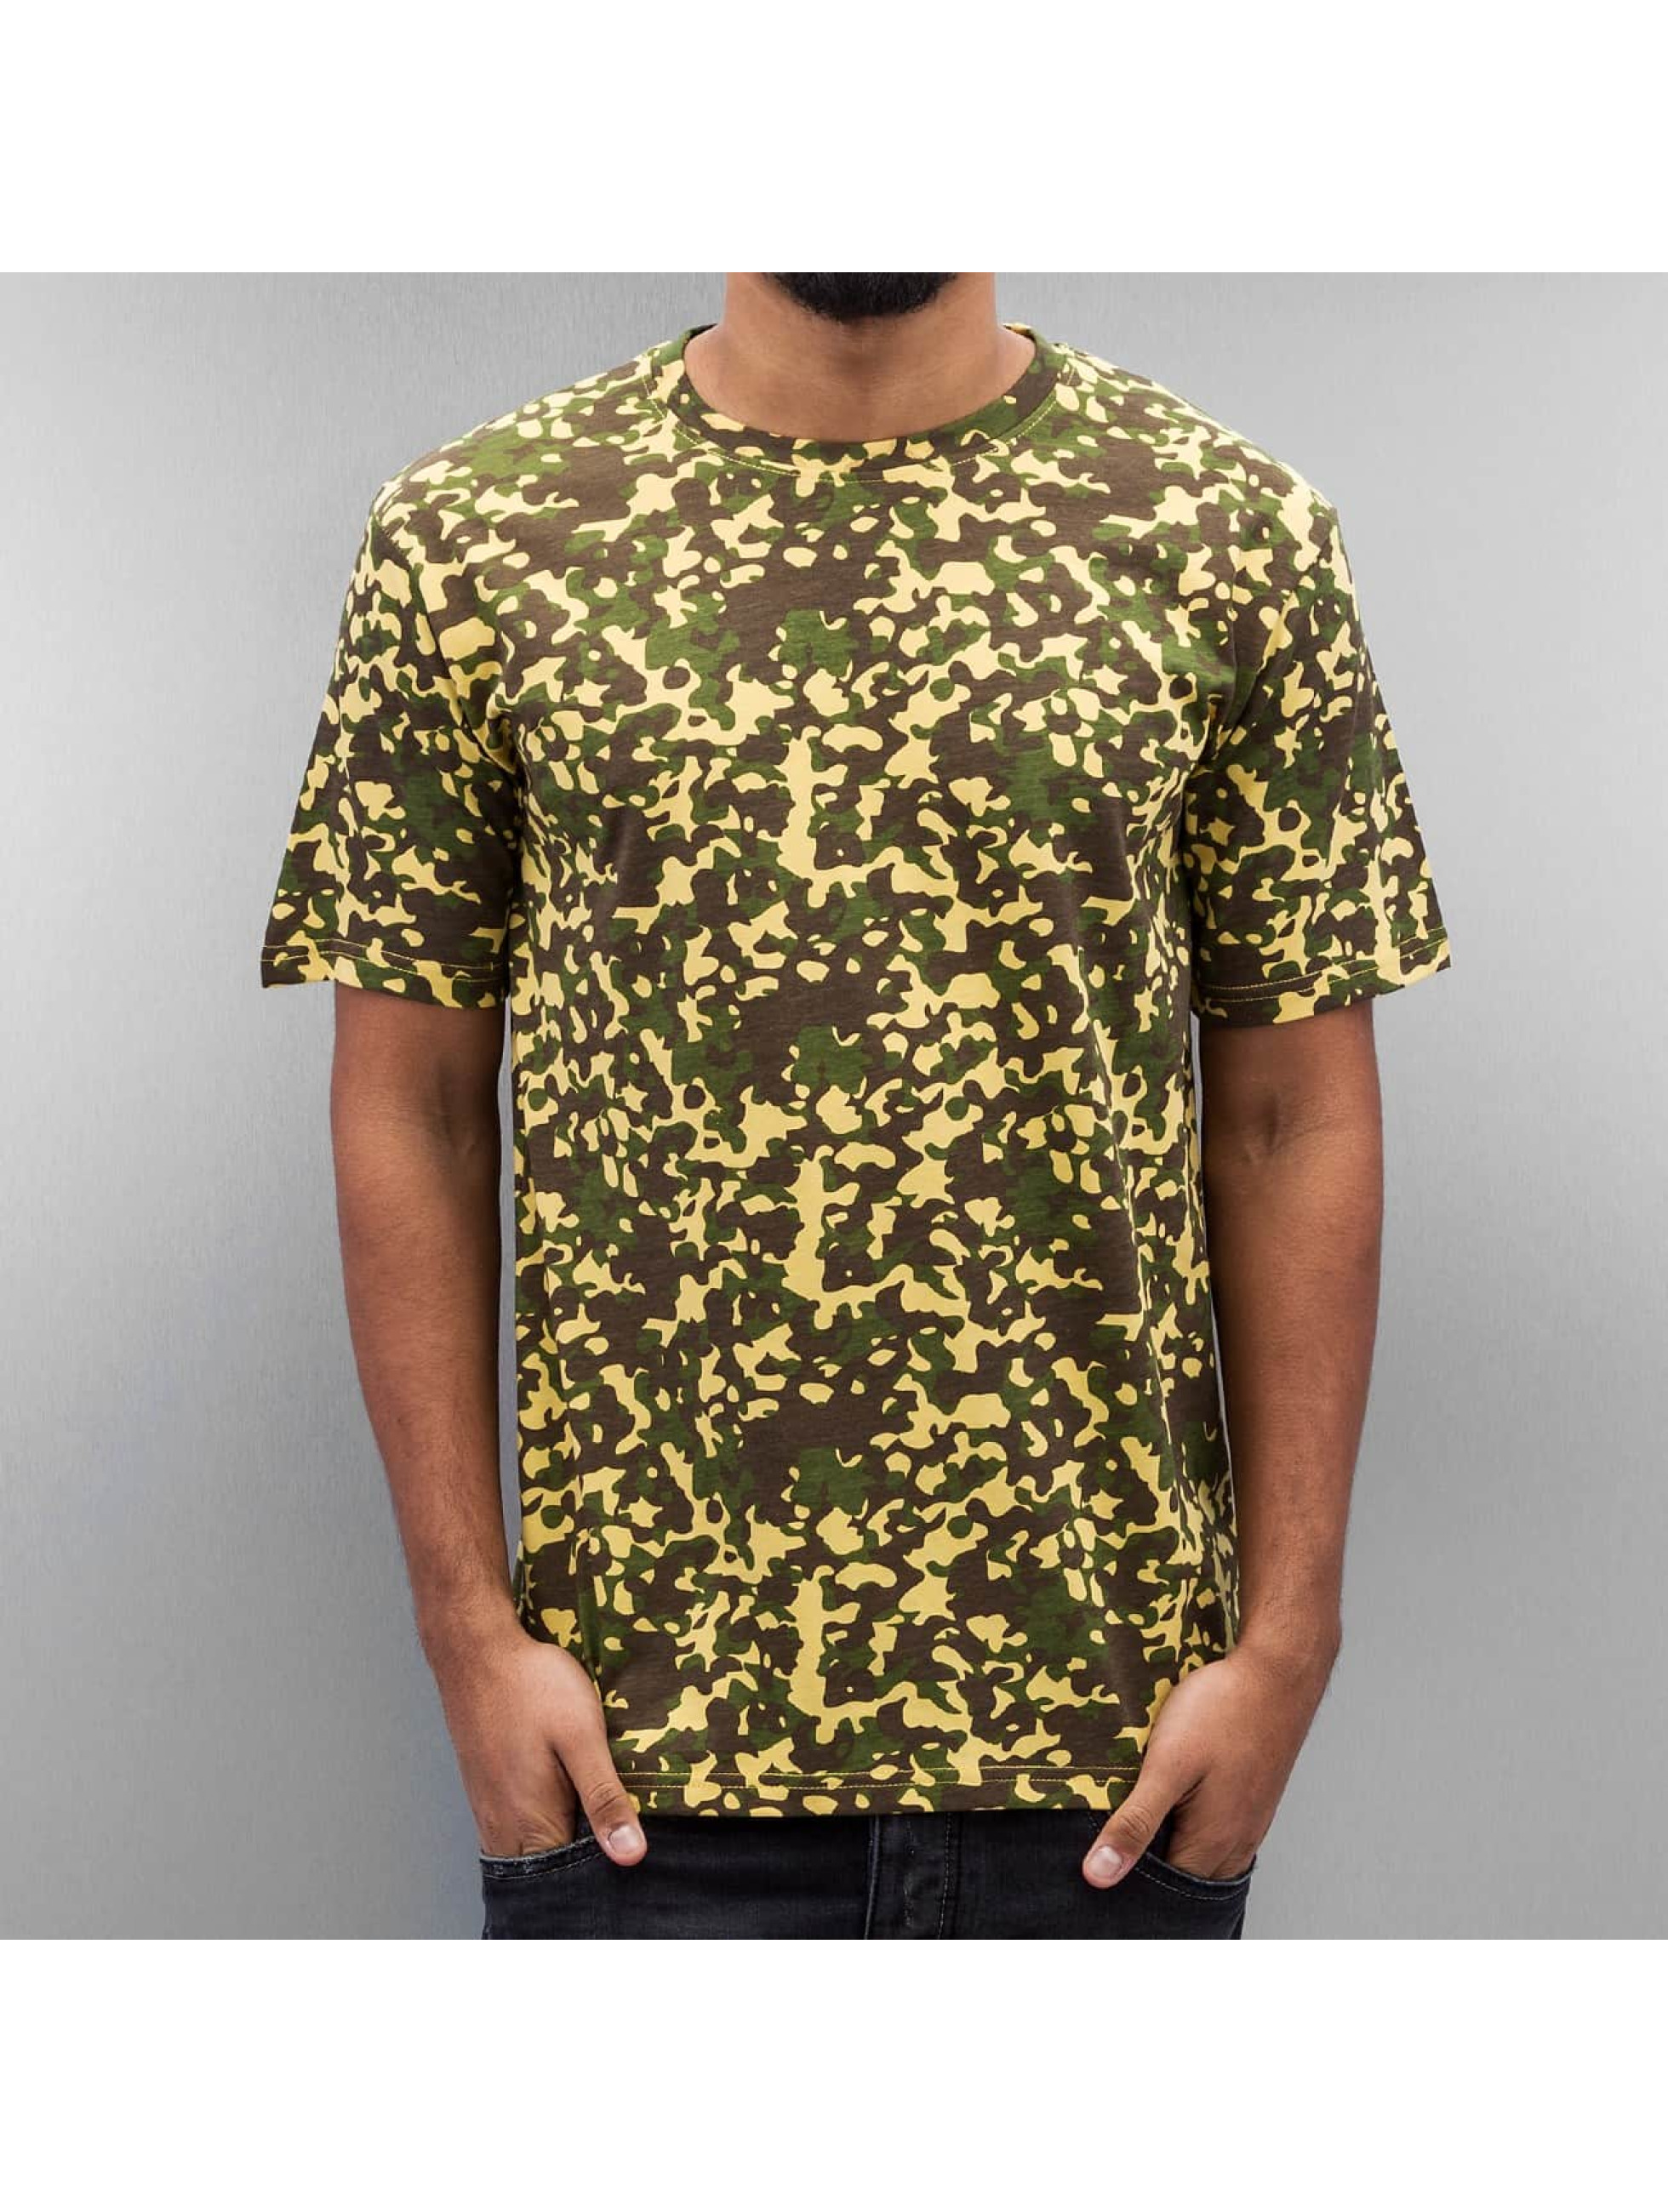 Cyprime / T-Shirt Segundo in camouflage S